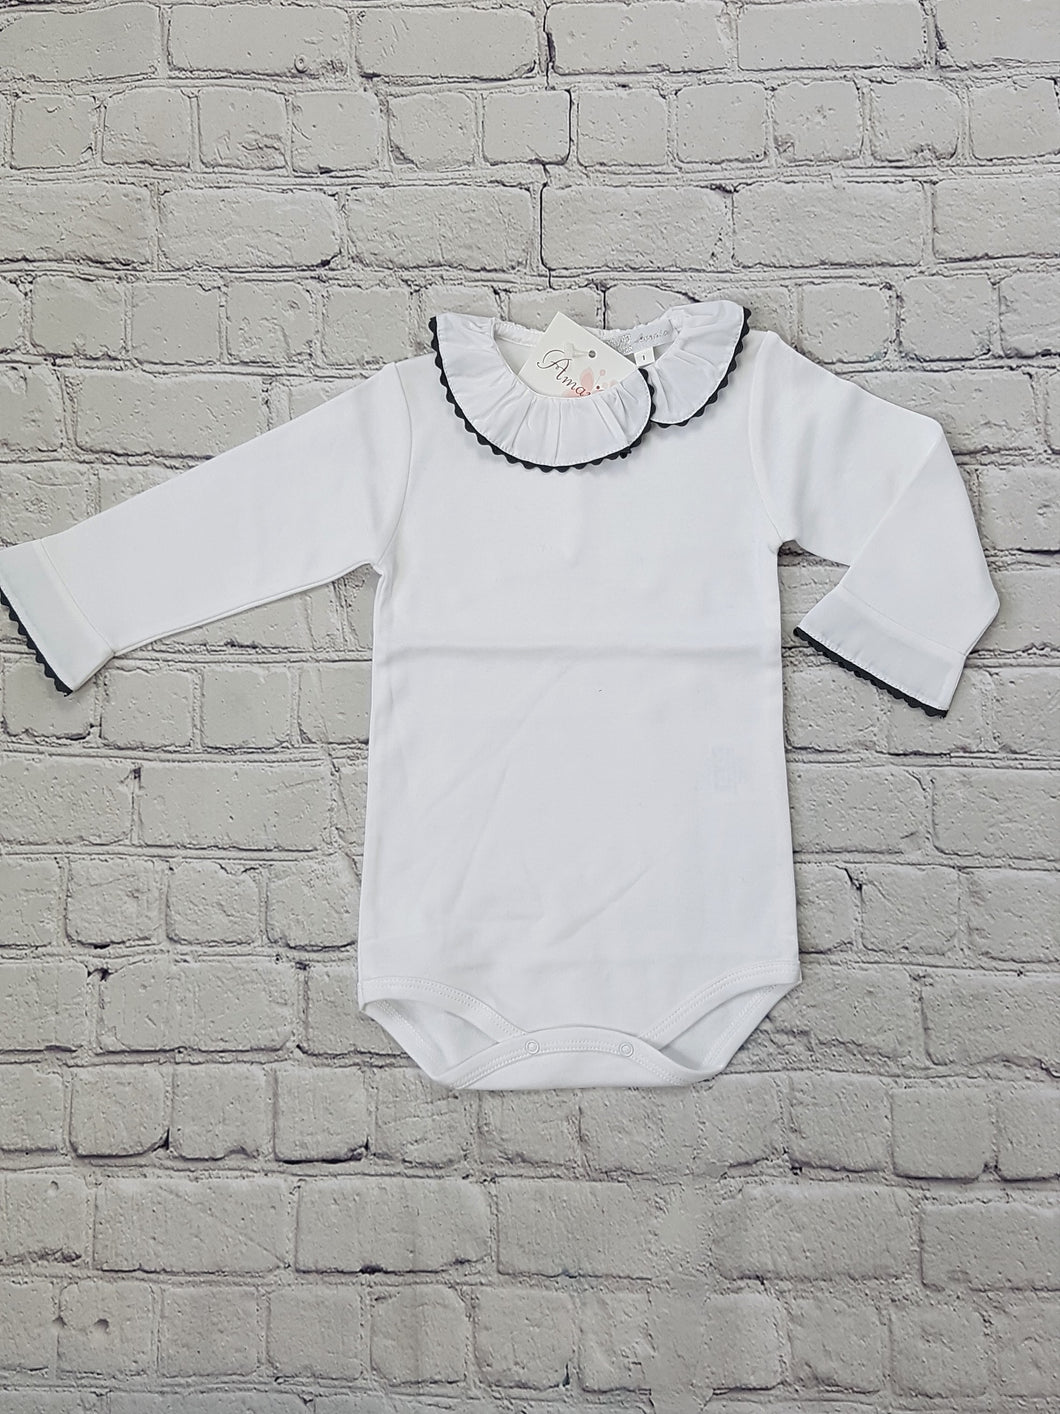 AMAIA outlet baby bodysuit - FAMILY AFFAIRE